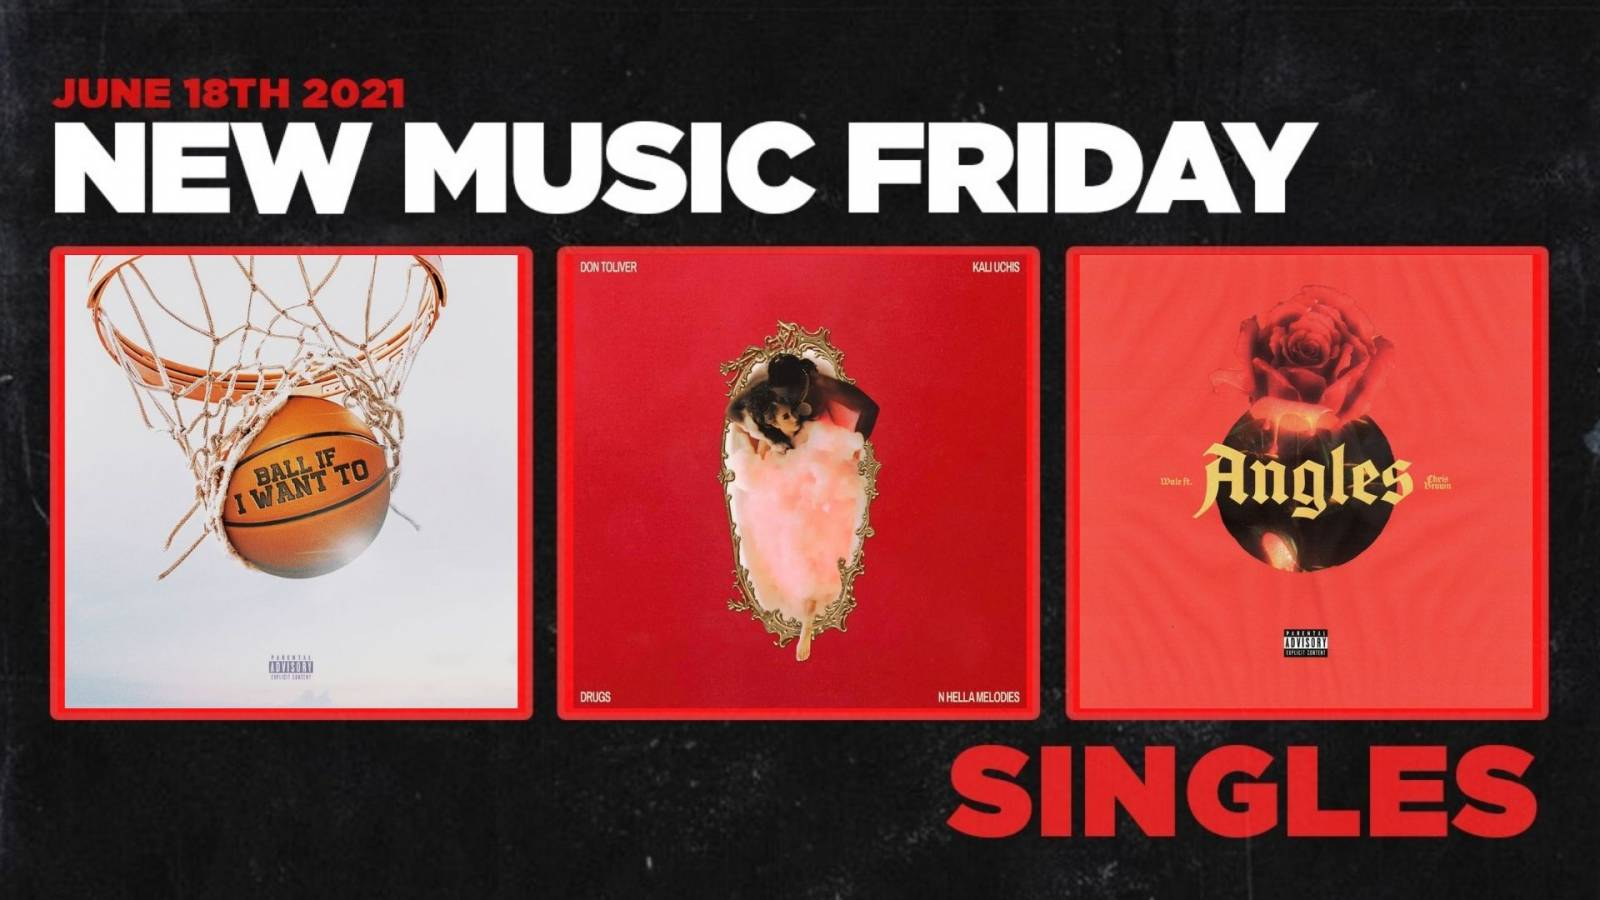 New Music Friday – New Singles From DaBaby, Don Toliver & Kali Uchis, Skepta, Wale & Chris Brown + More